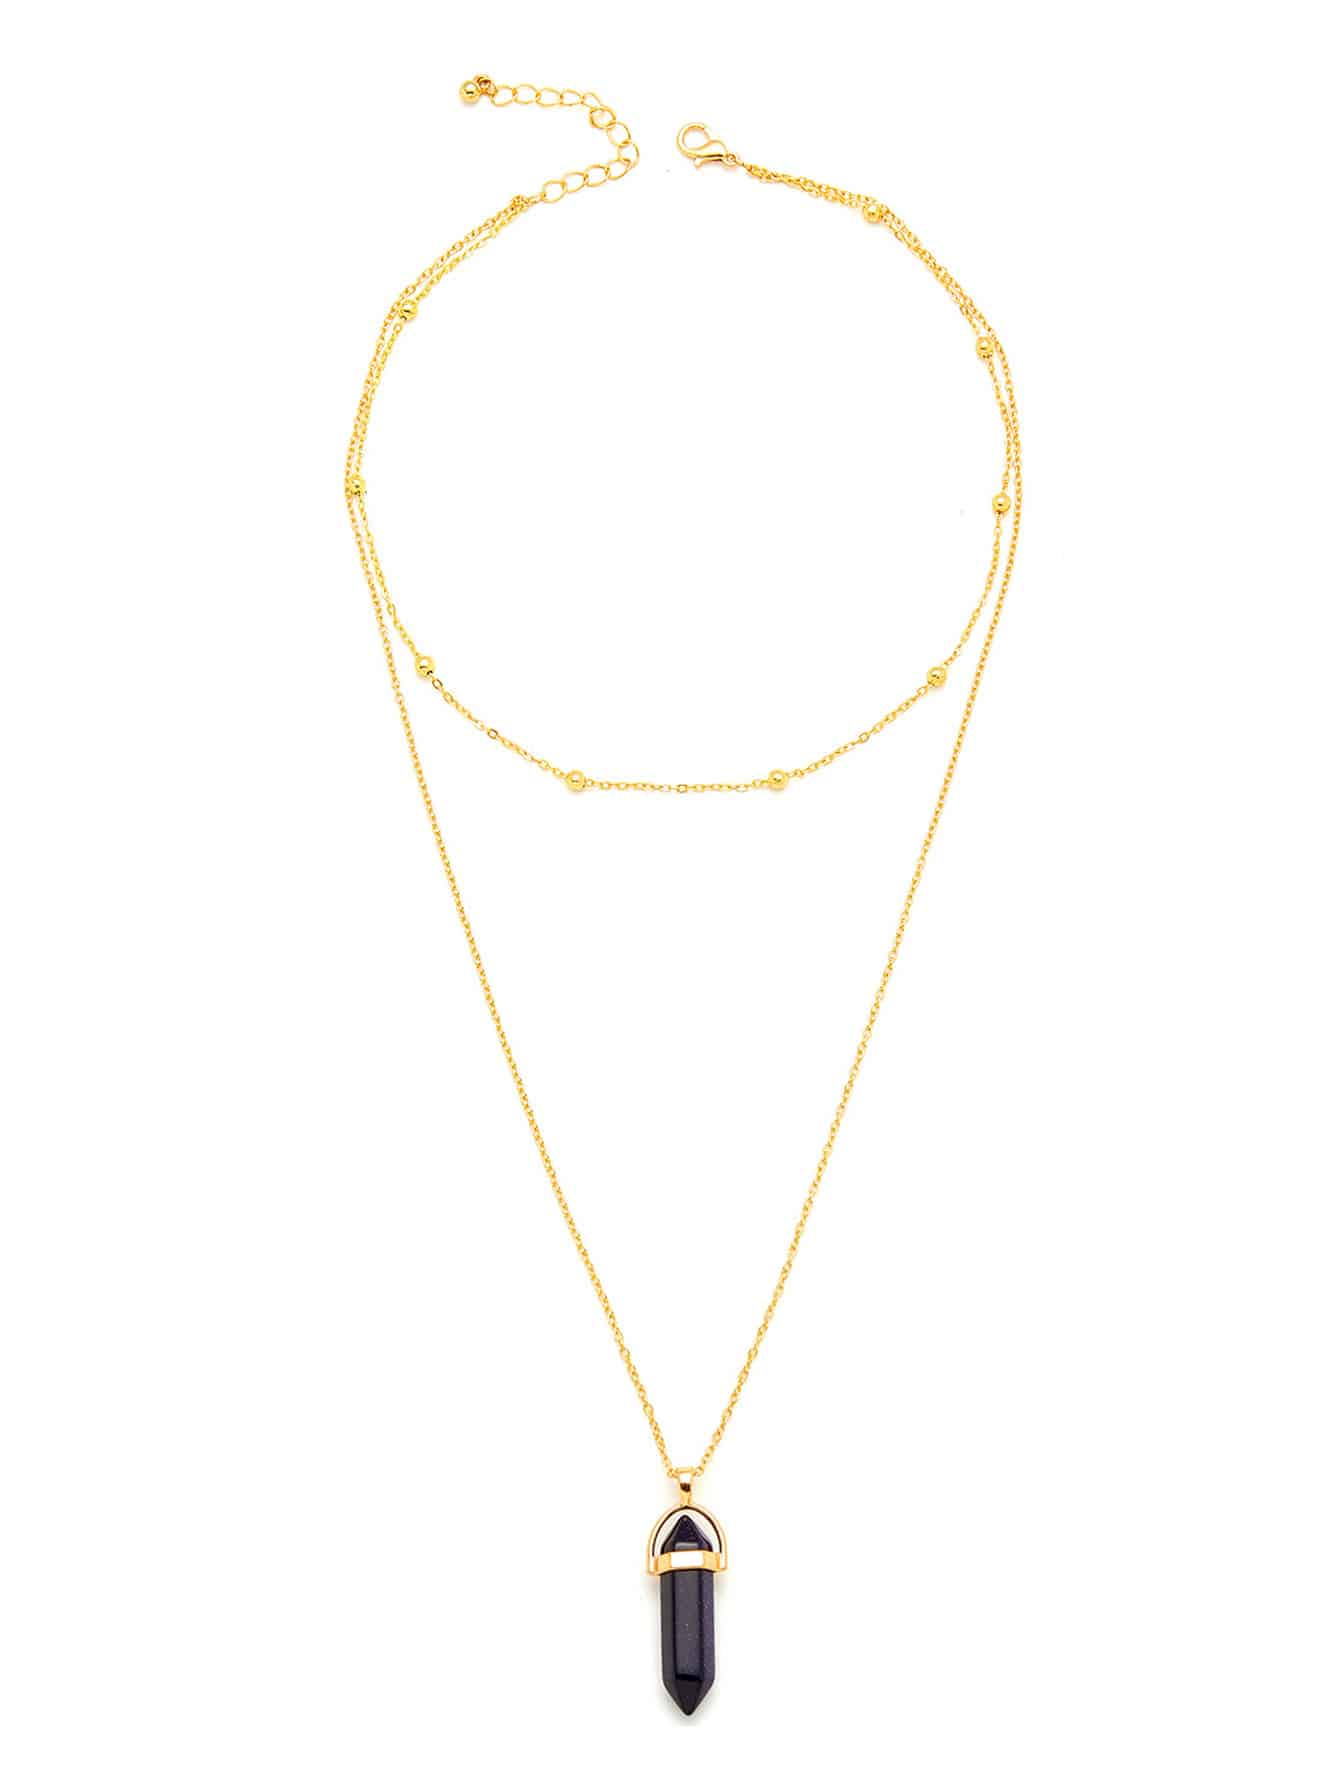 Contrast Crystal Pendant Chain Necklace